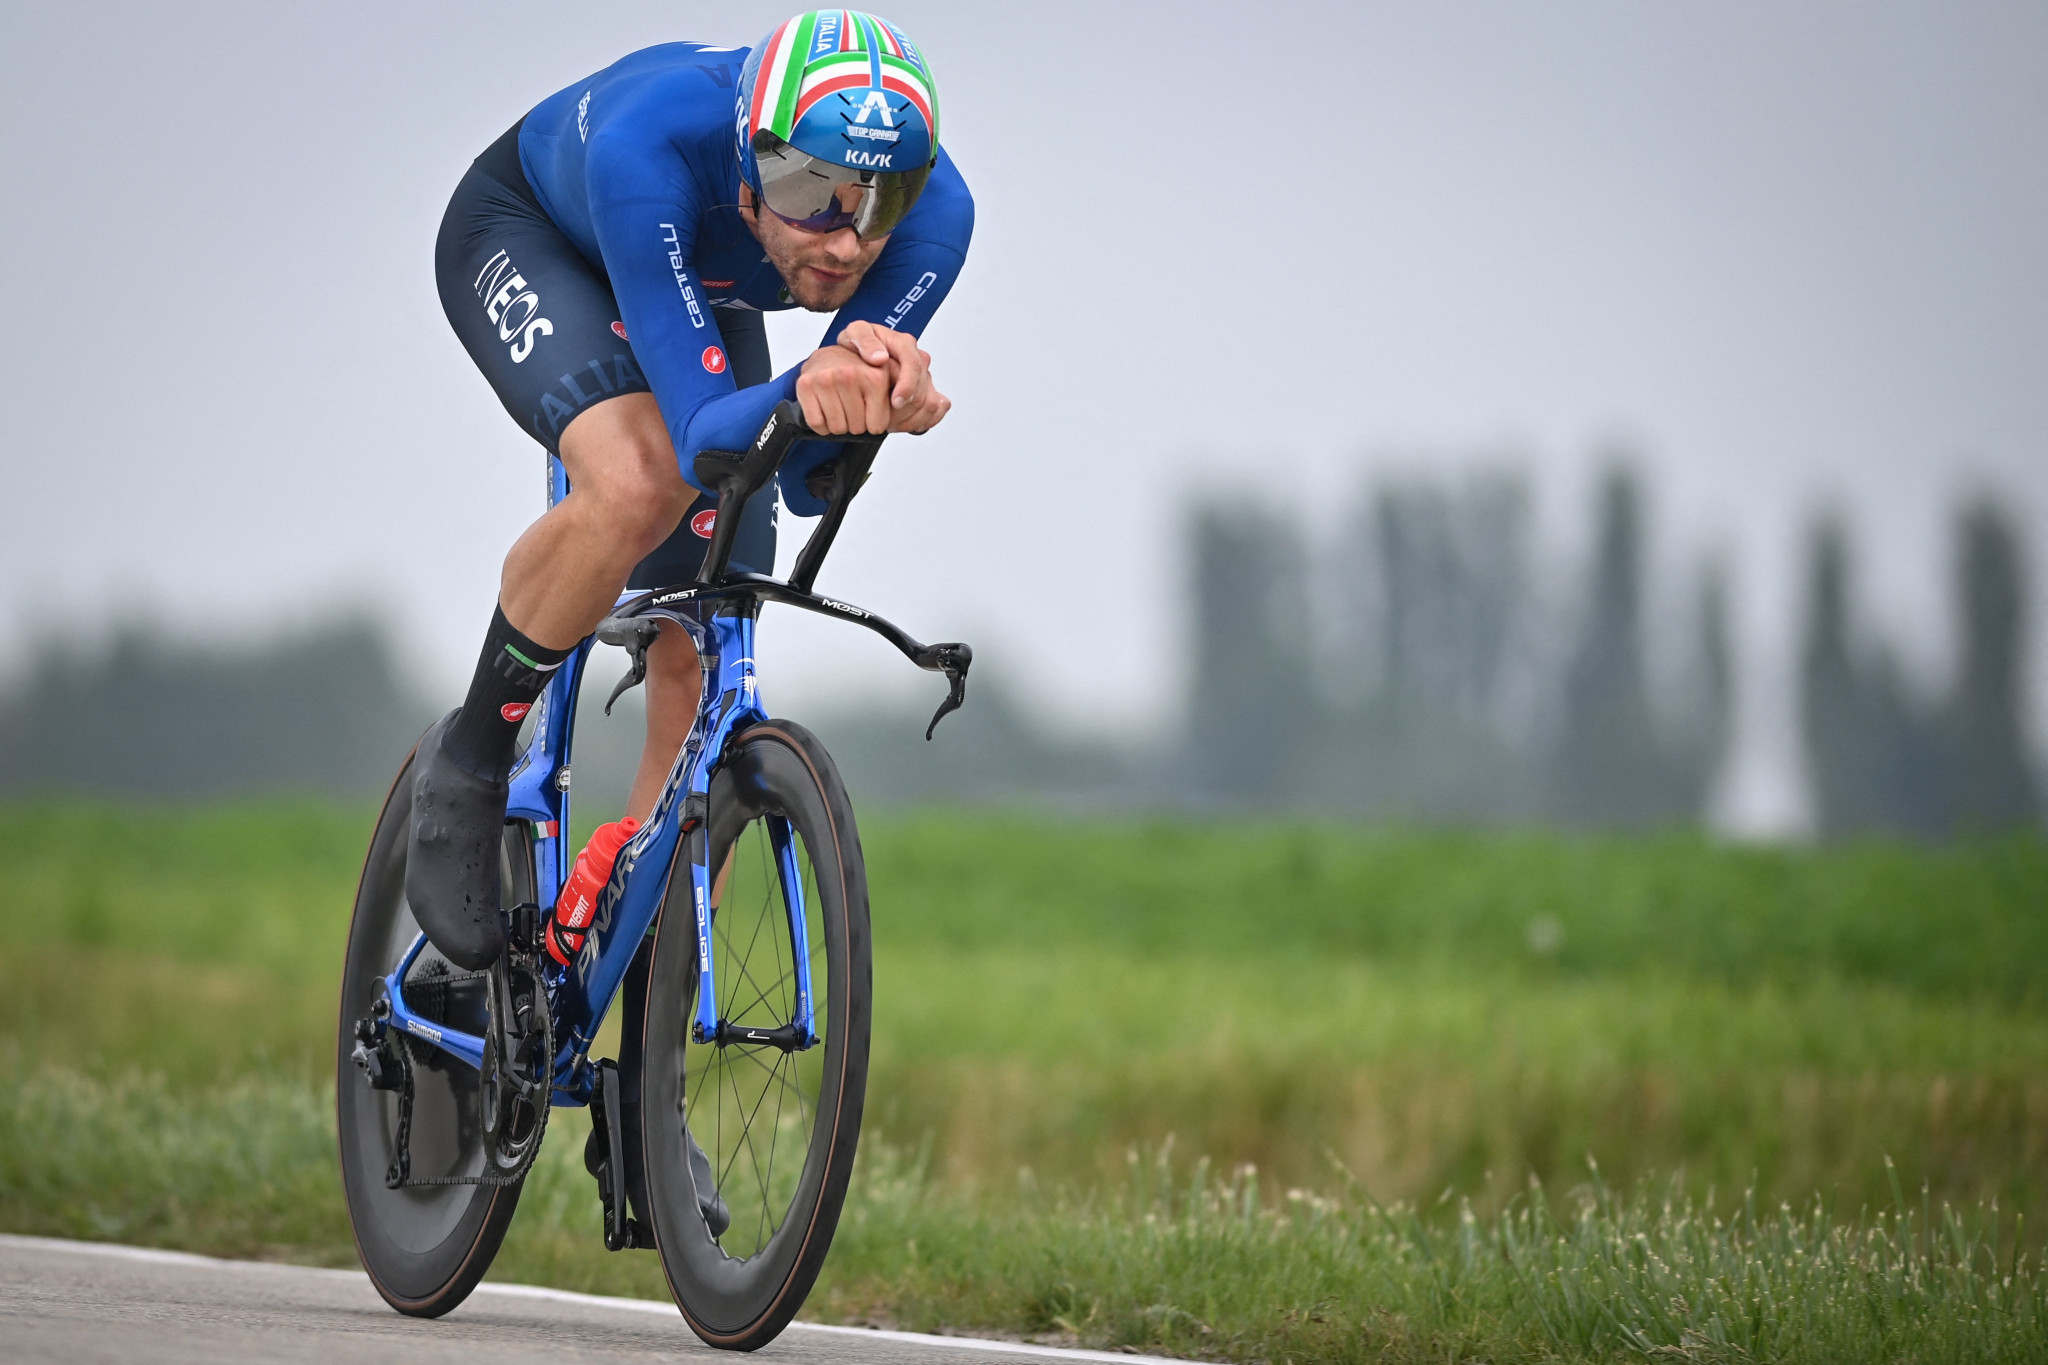 Ganna edges Van Aert to defend time trial title at UCI Road World Championships